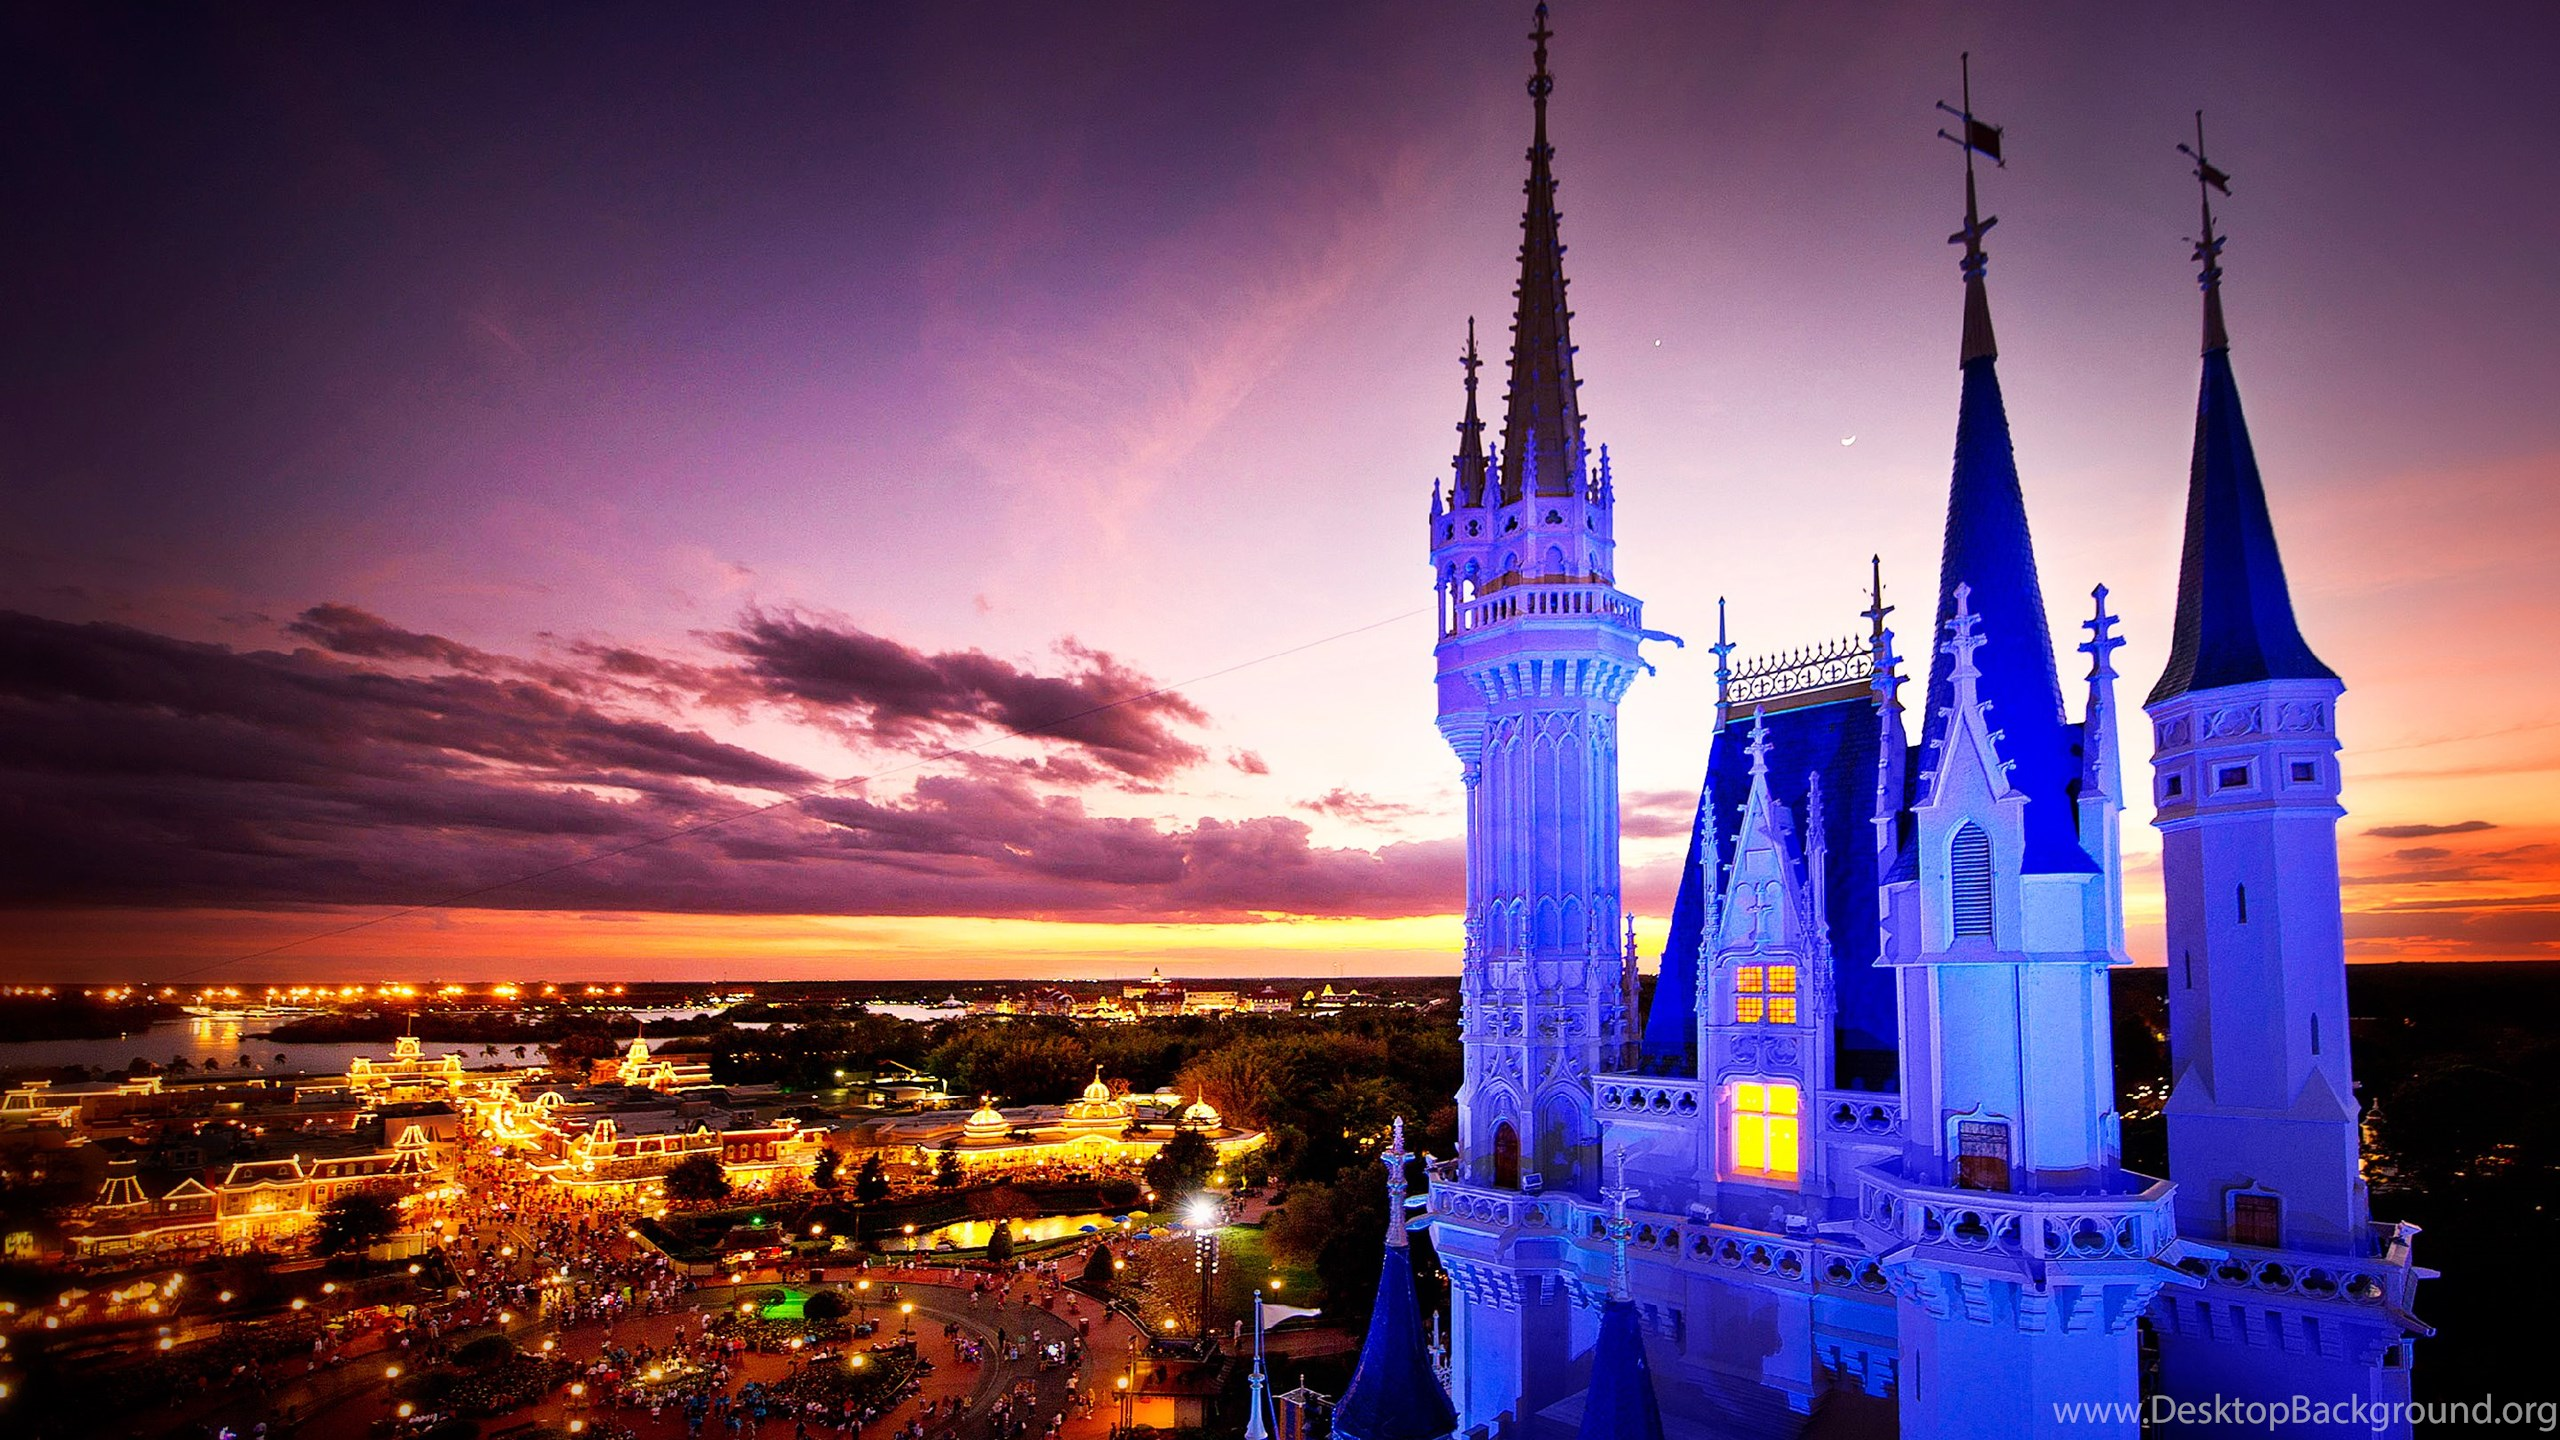 Image Wallpapers Of Cinderella Castle At Night From The Disney